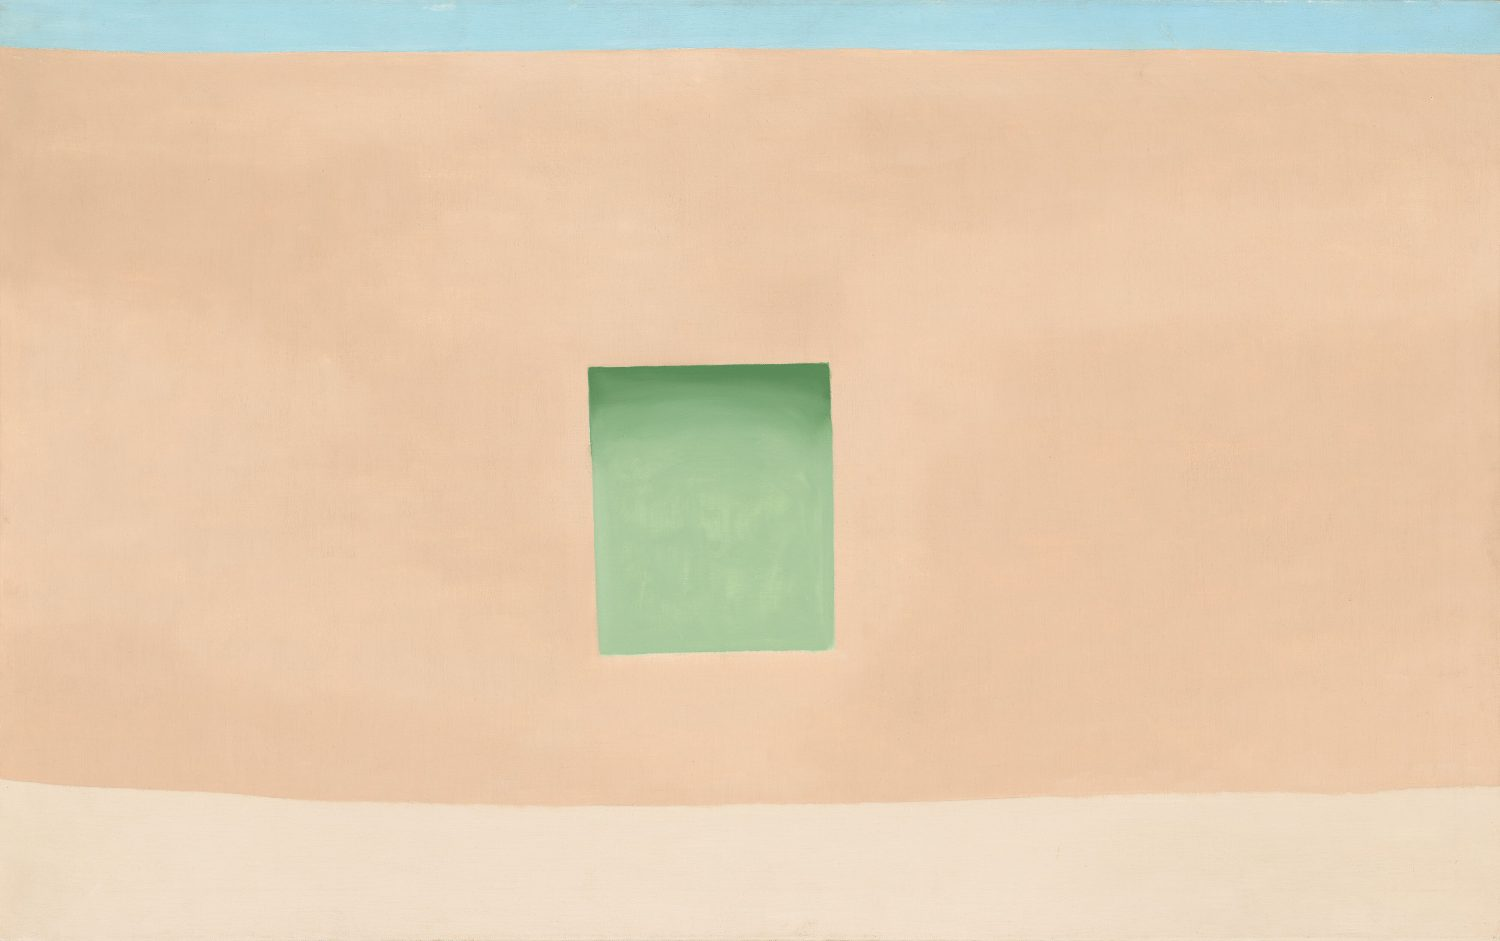 Aftereffect: Georgia O'Keeffe and Contemporary Painting